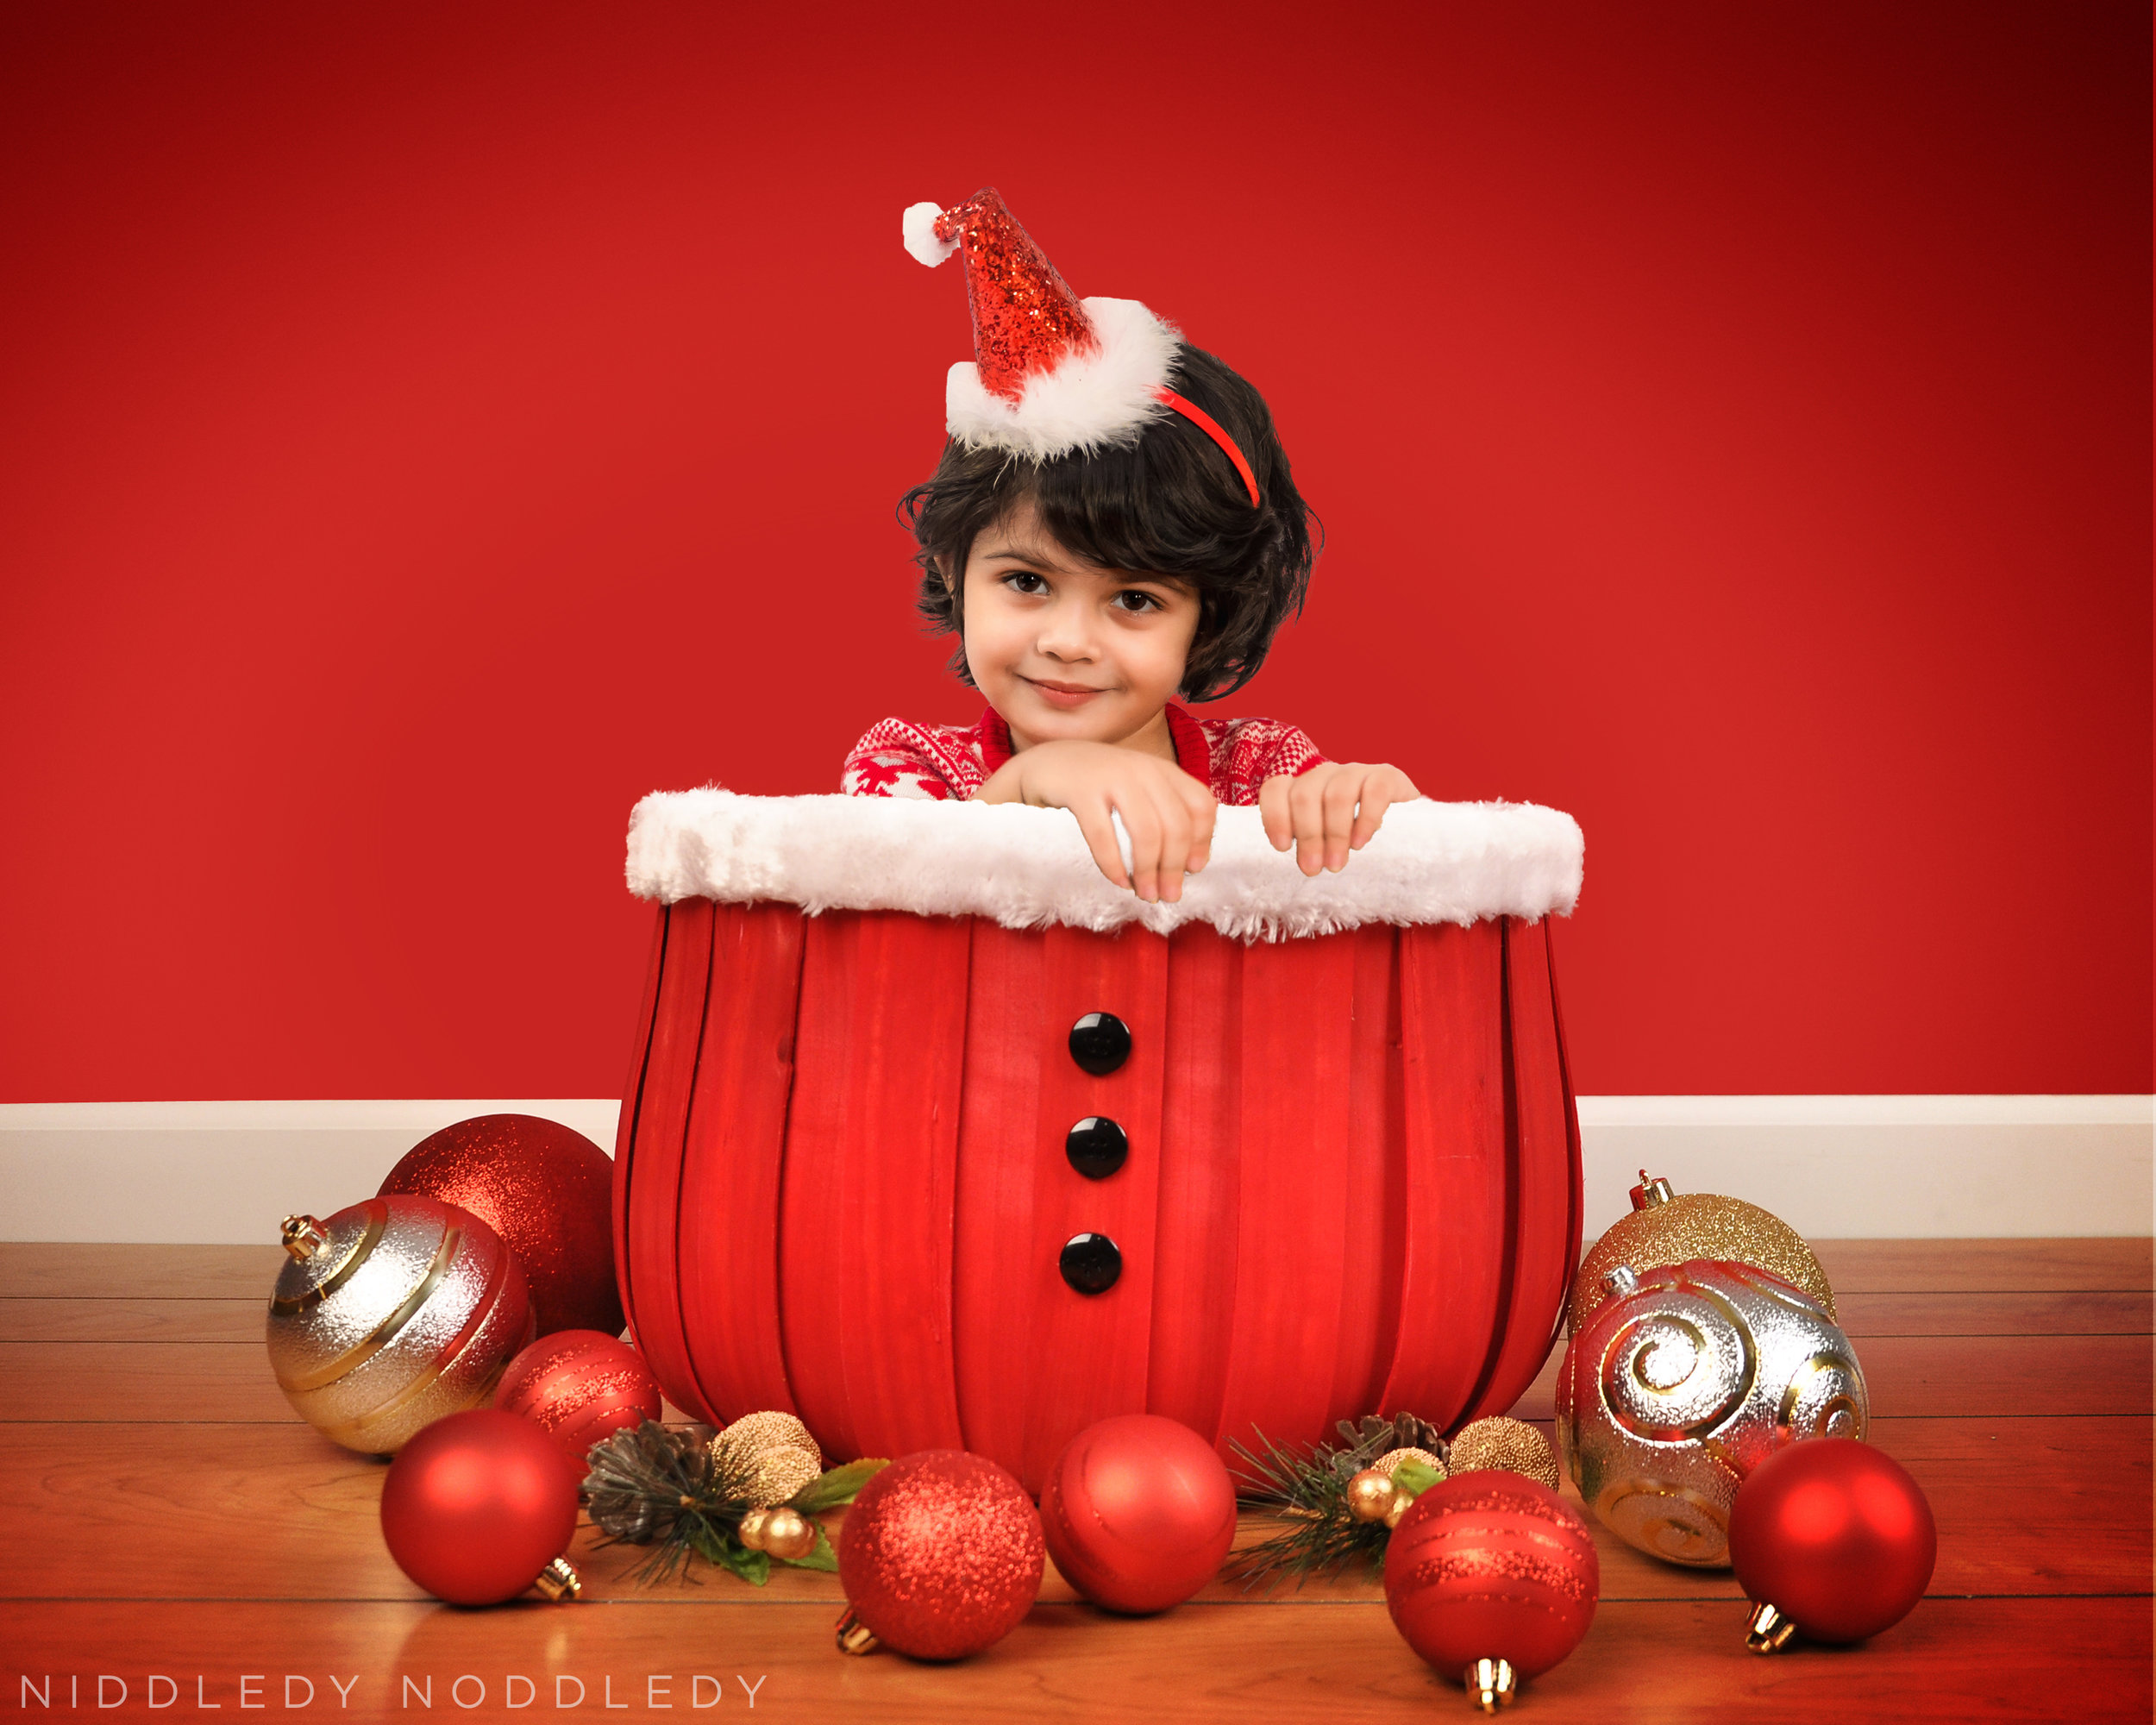 Arya Christmas 2017 Photoshoot ❤ NiddledyNoddledy.com ~ Bumps to Babies Photography, Kolkata - 04.jpg